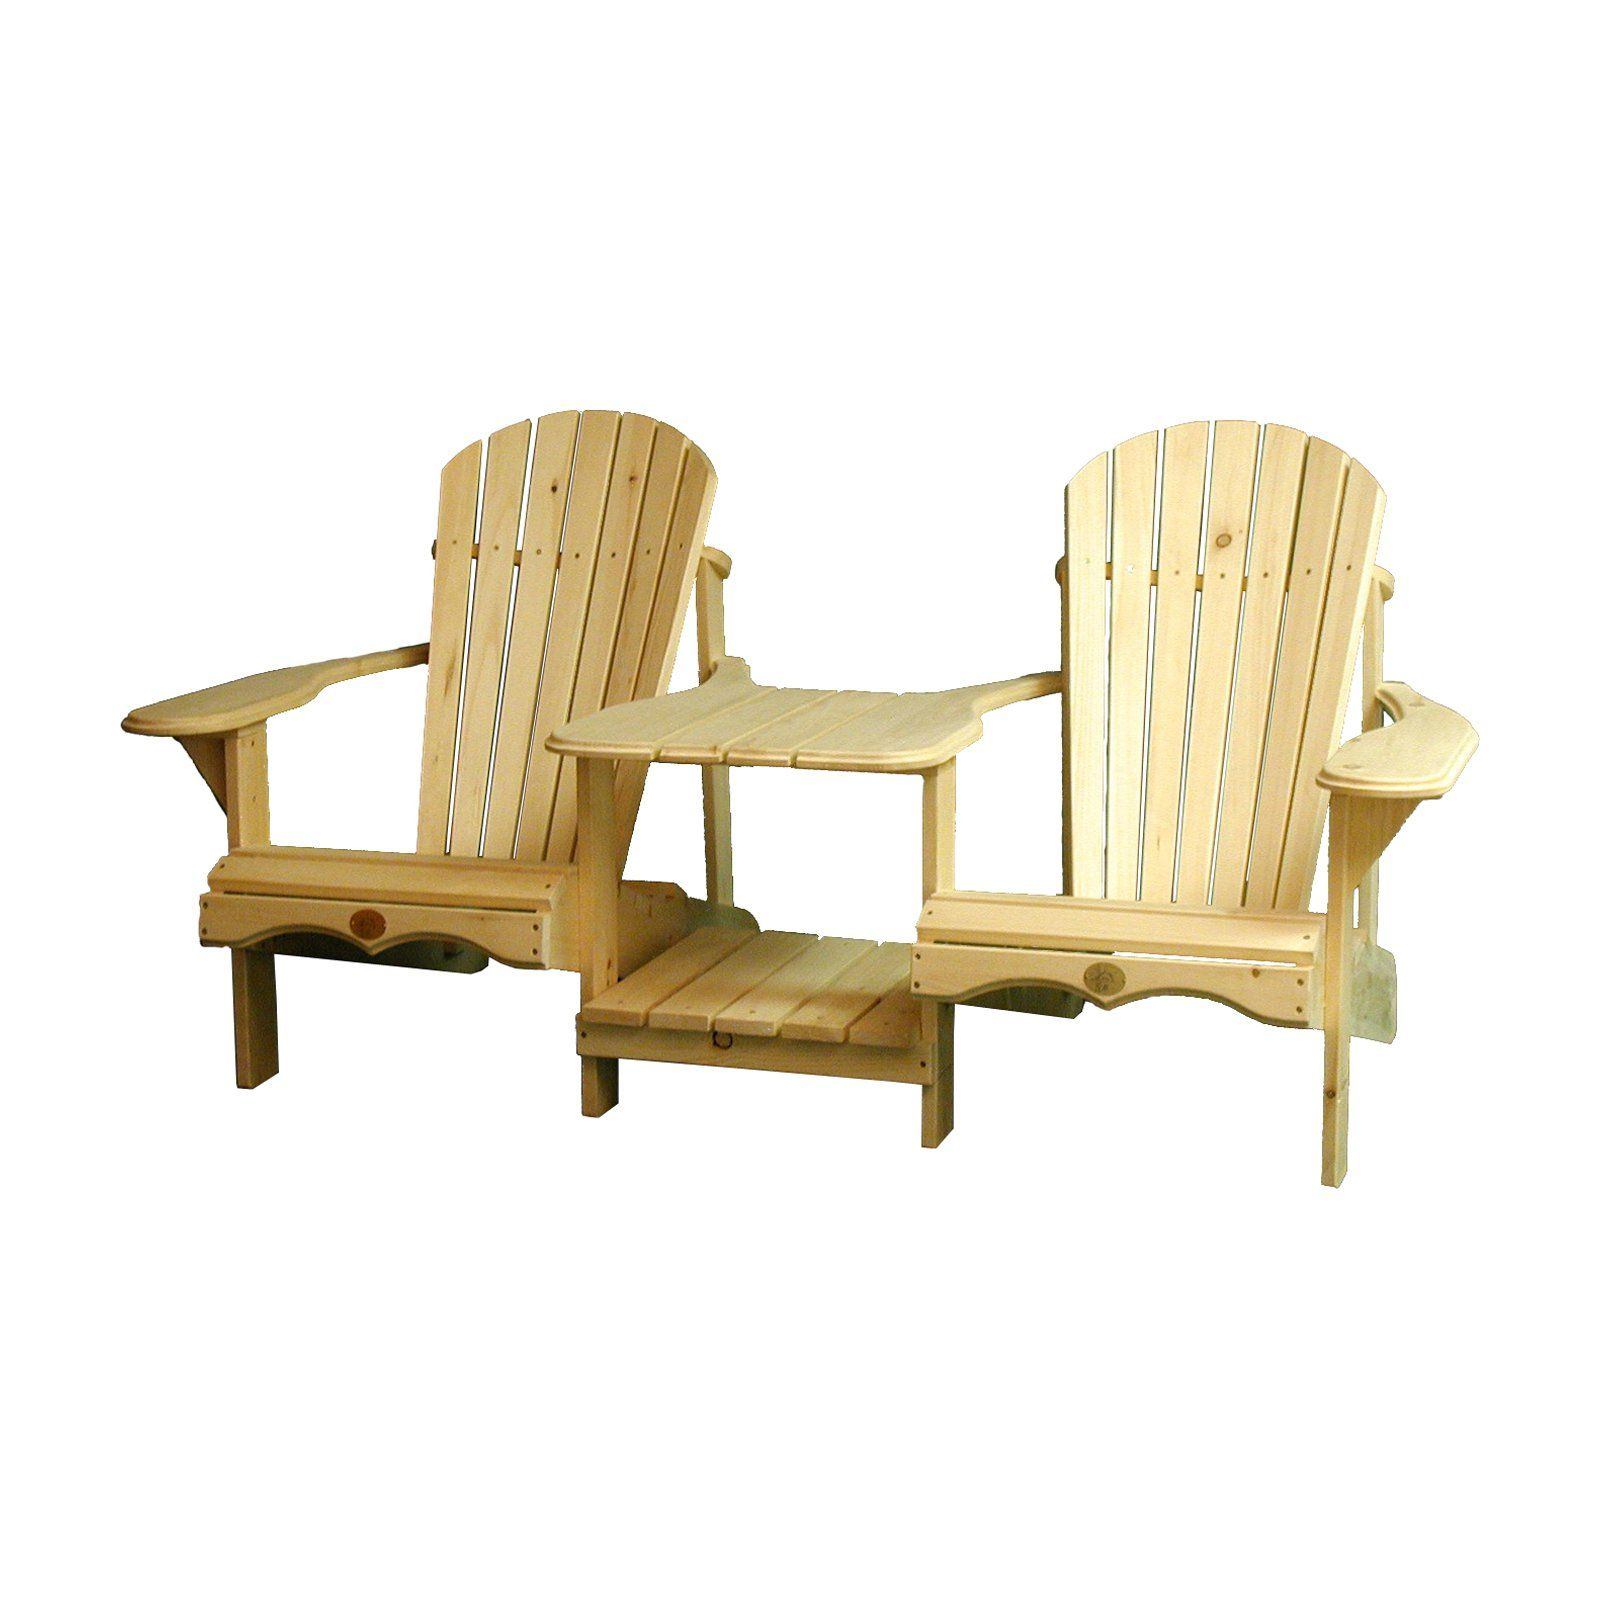 Outdoor The Bear Chair Wood Adirondack Tete A Tete Bench In For Wicker Tete A Tete Benches (View 17 of 25)